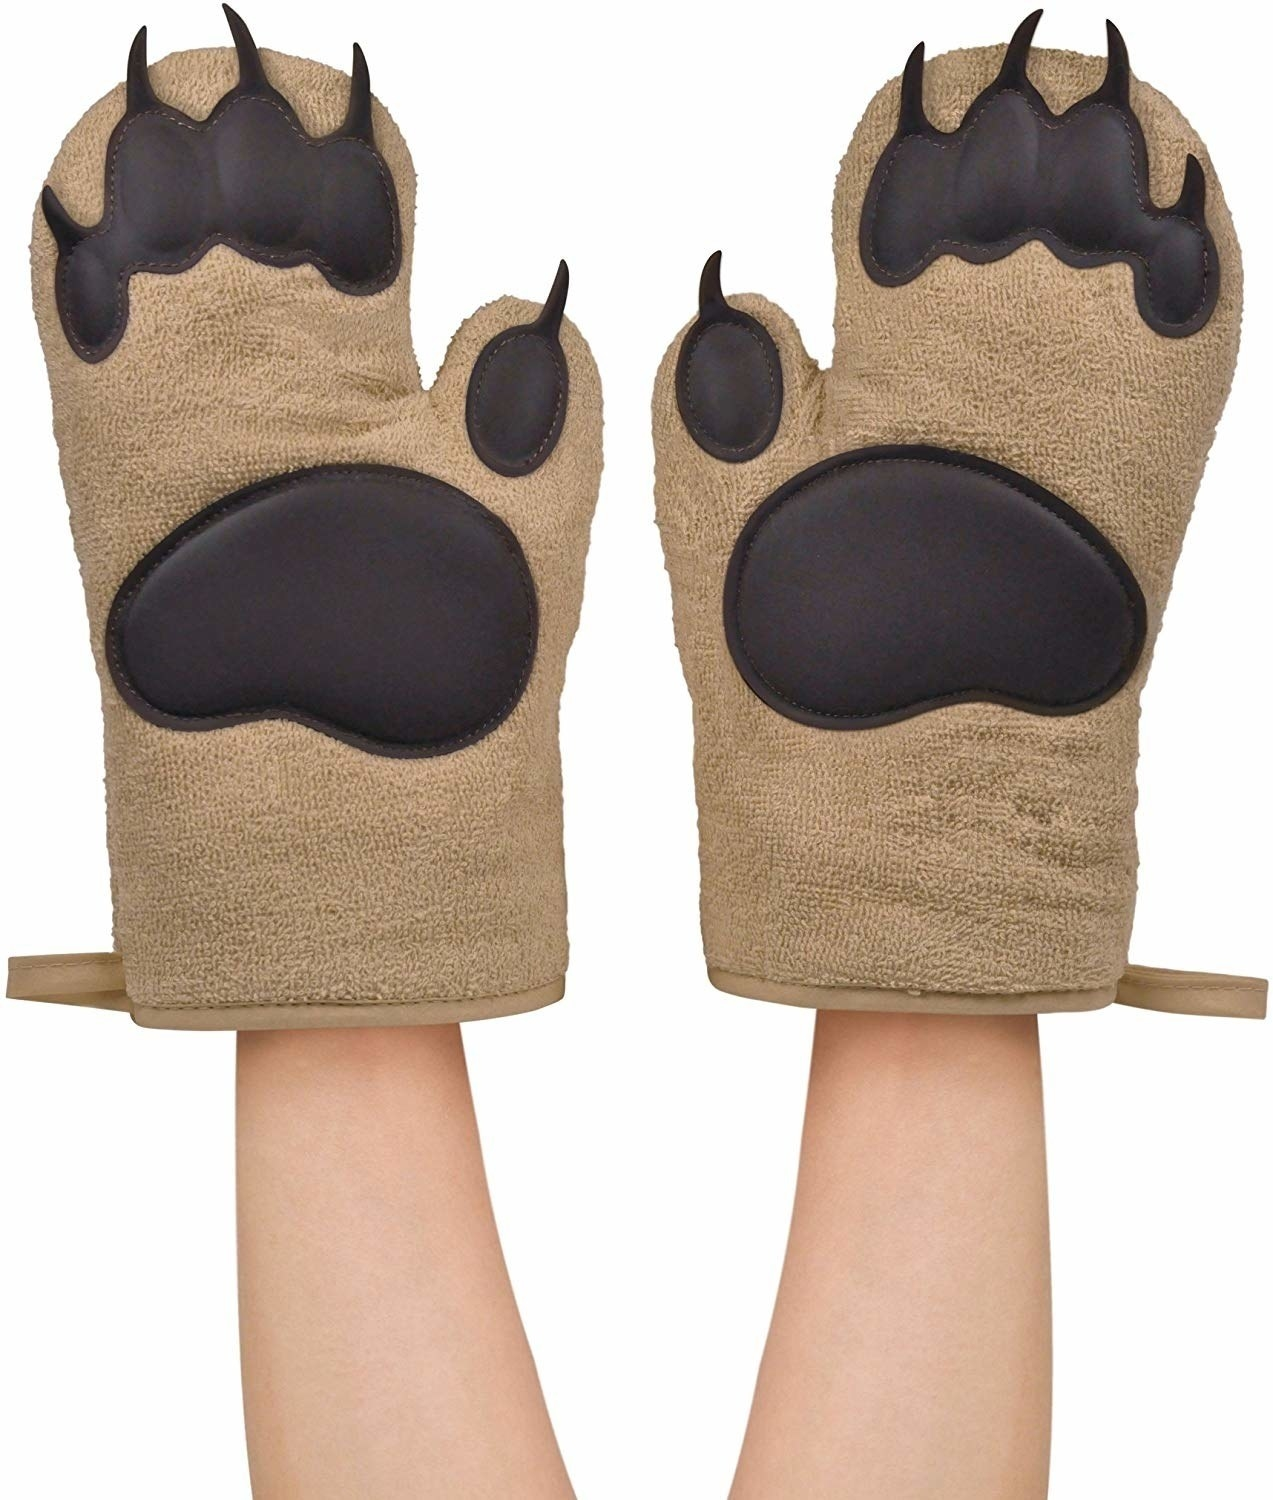 a model wearing the brown even mitts that look like bear claws